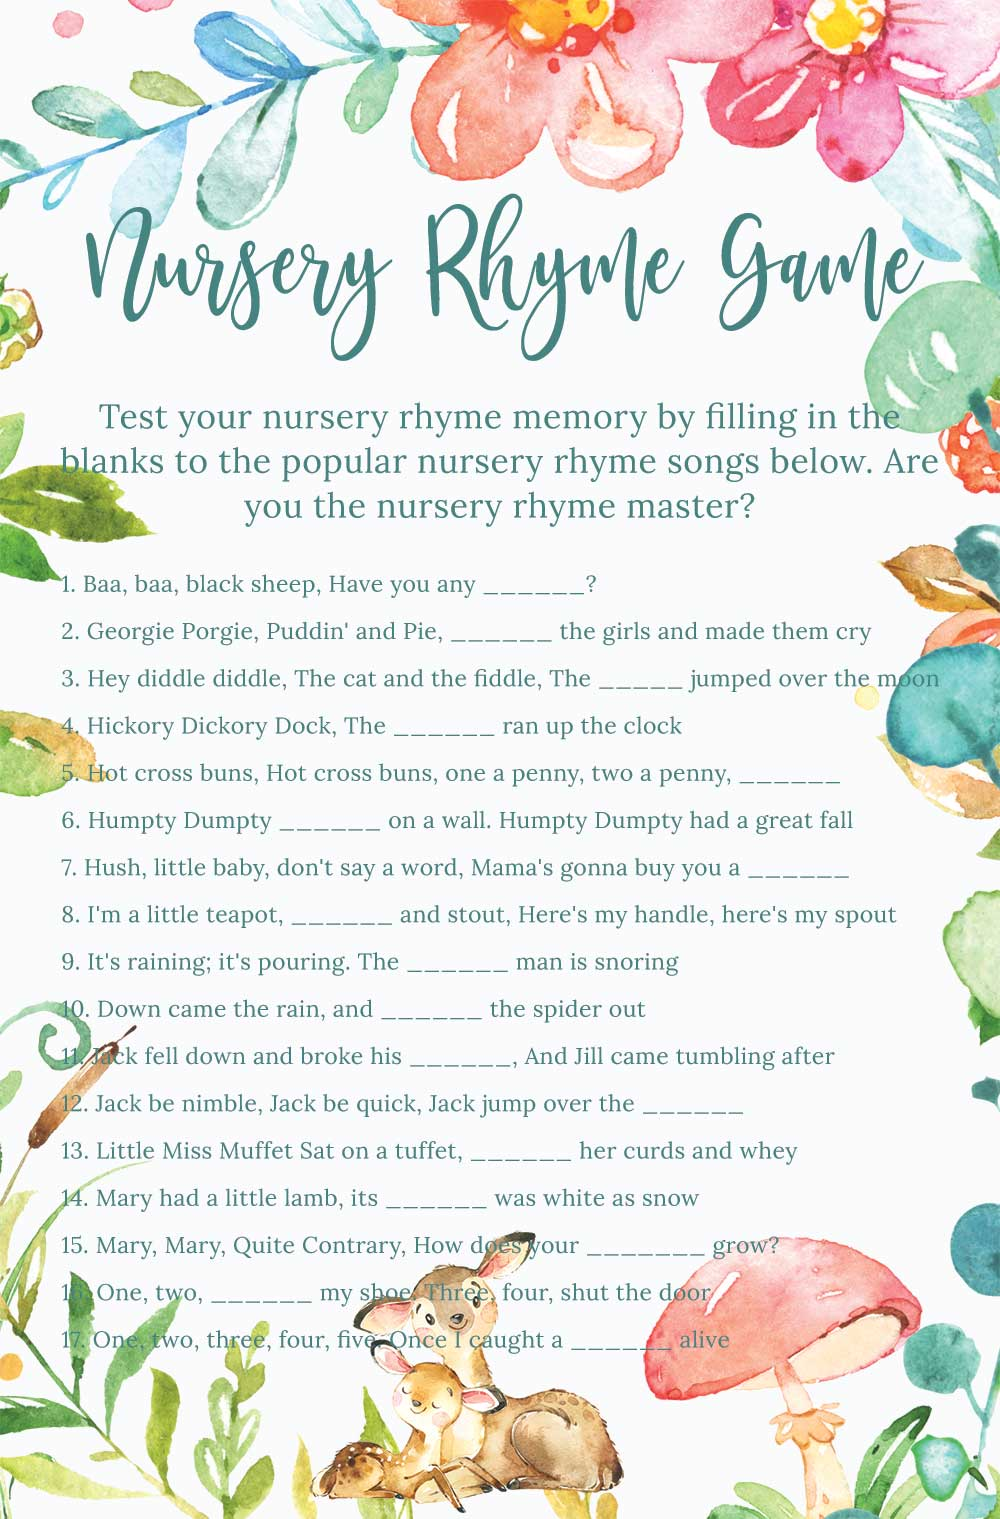 Nursery rhyme game - Raspberry theme